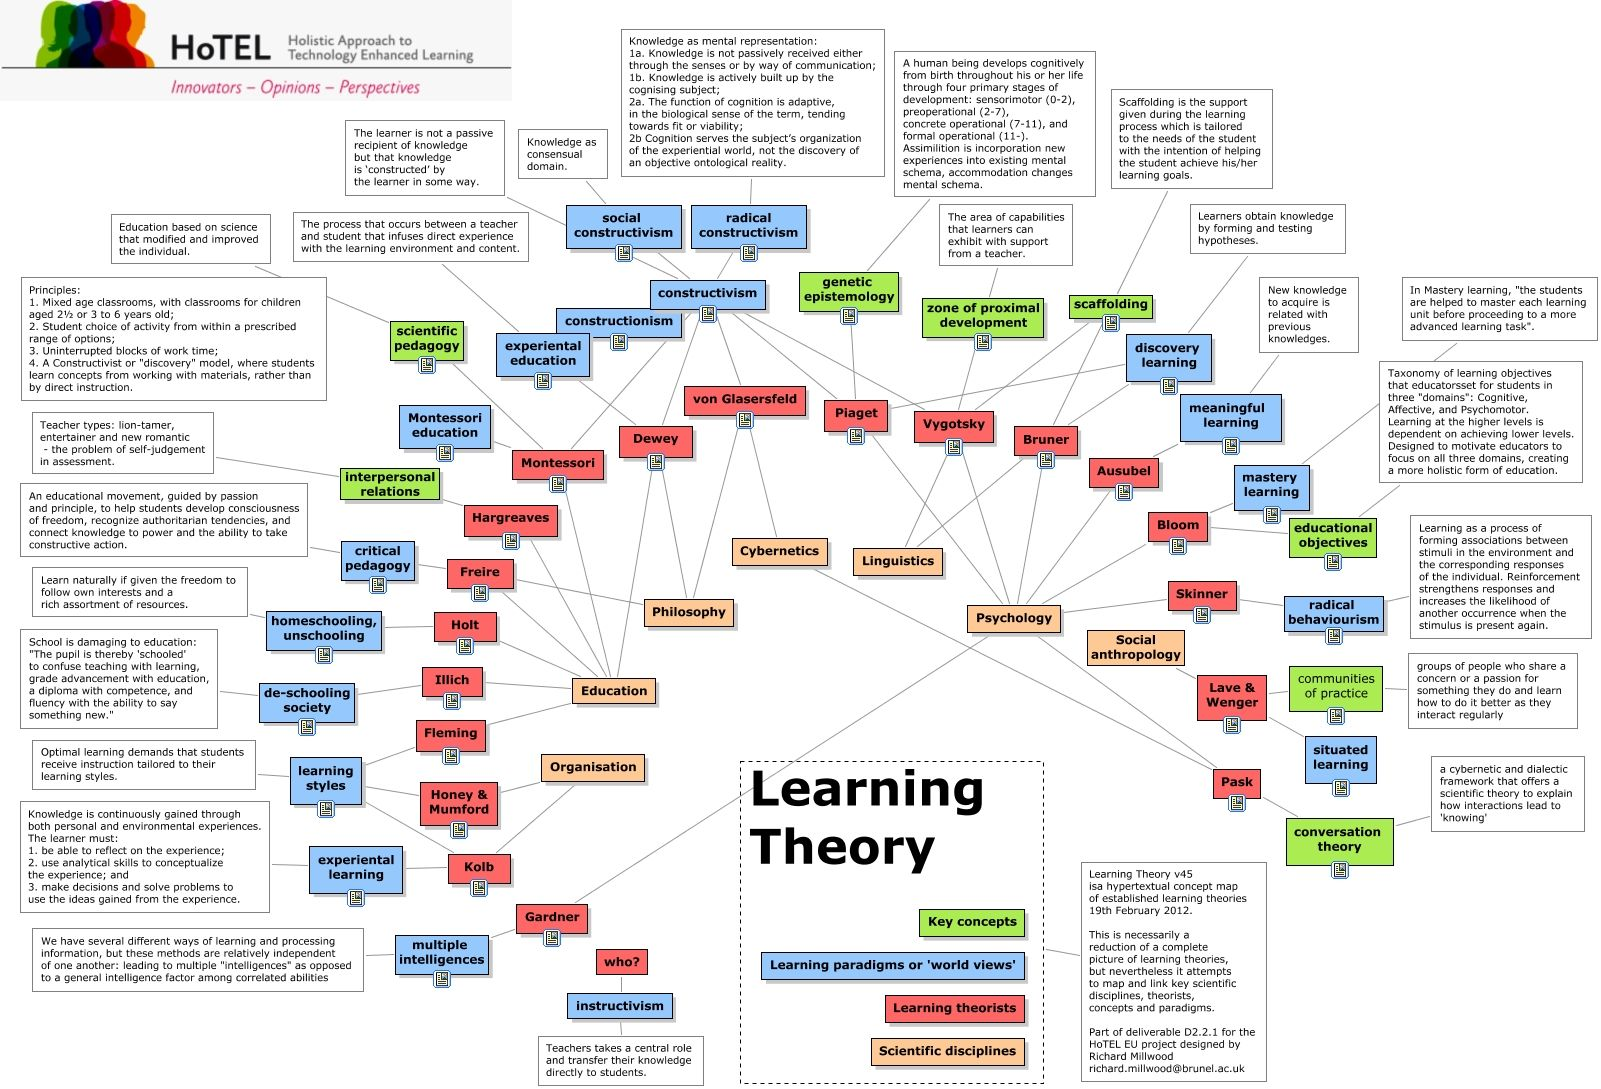 Learning Theory What Are The Elished Theories An Incredibly Useful Education Chart